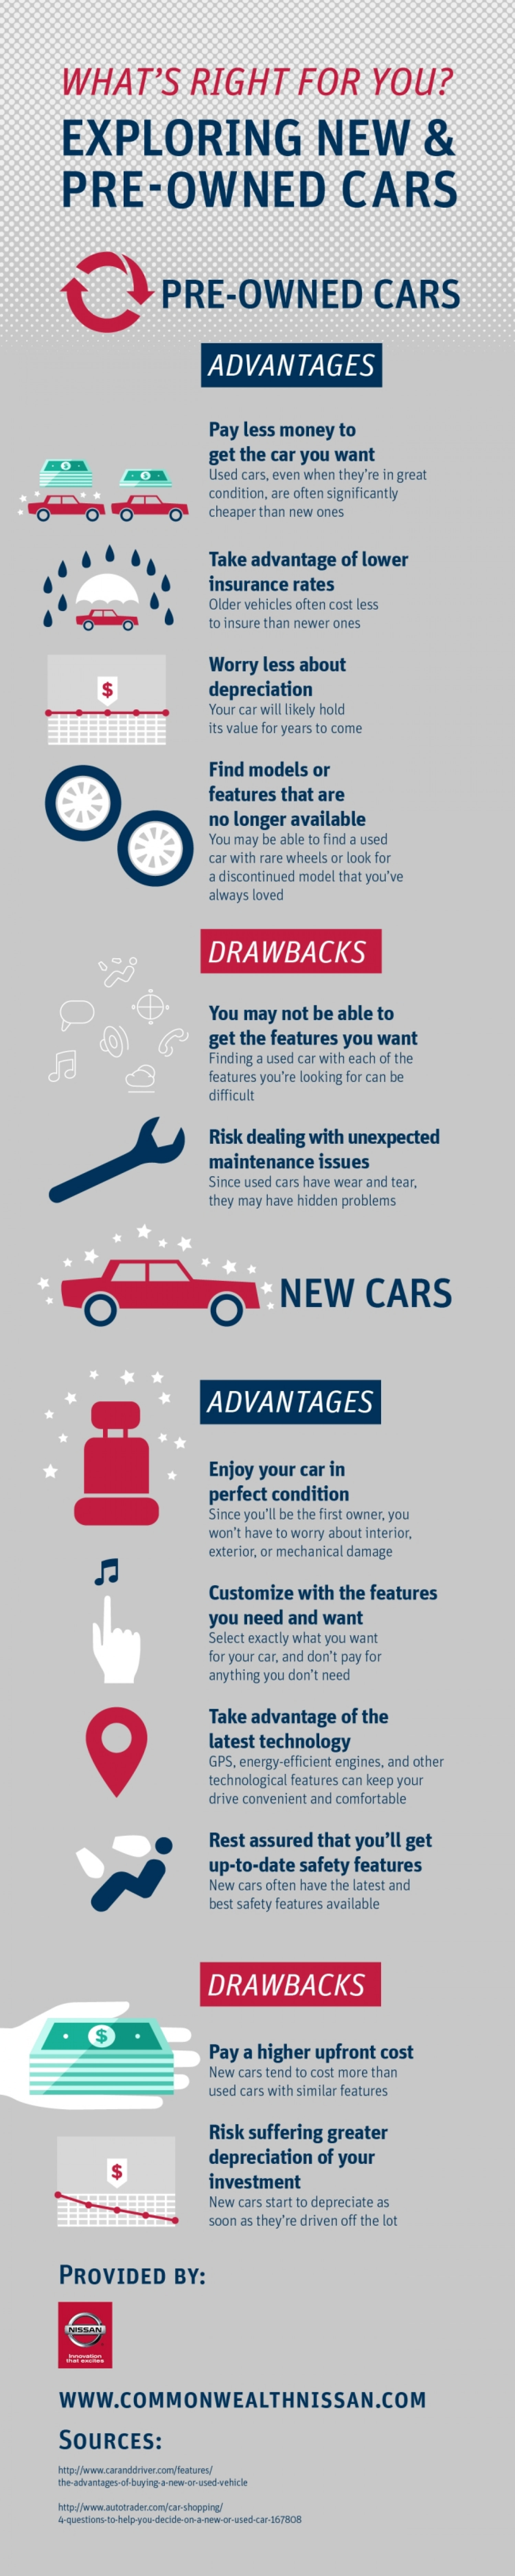 What's Right for You? Exploring New and Preowned Cars Infographic